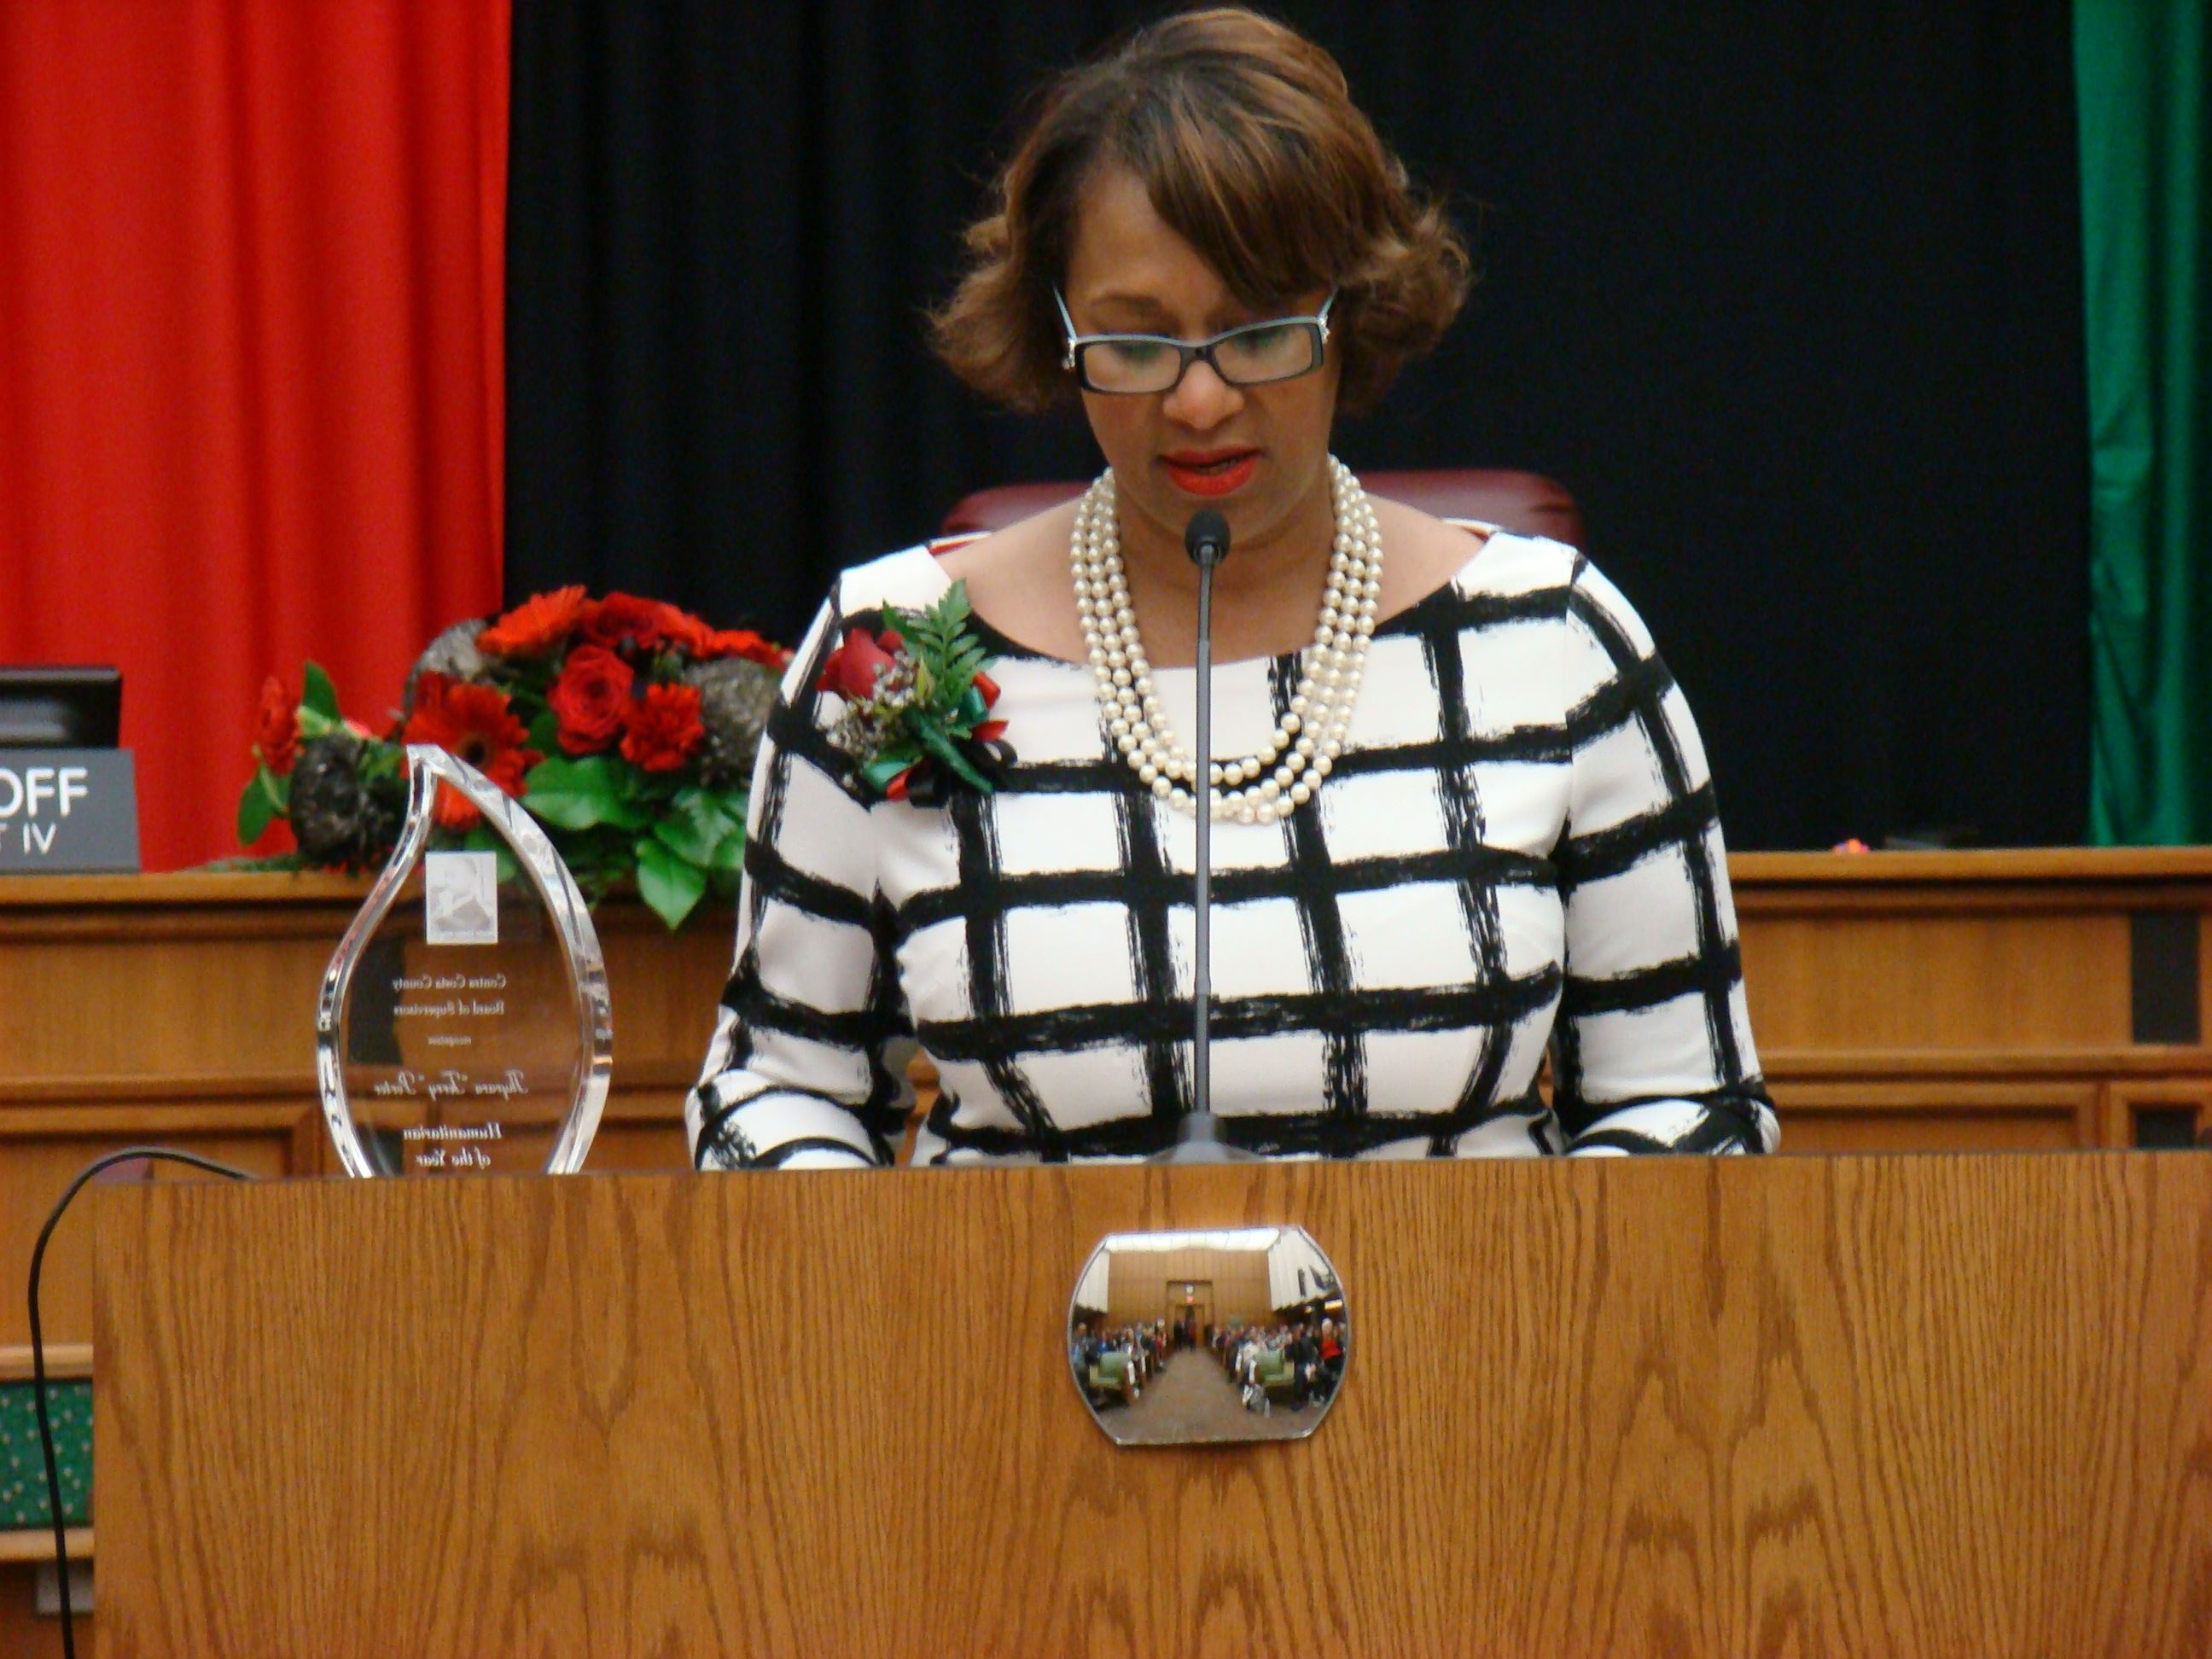 Dr. Martin Luther King, Jr. 2016 Ceremony